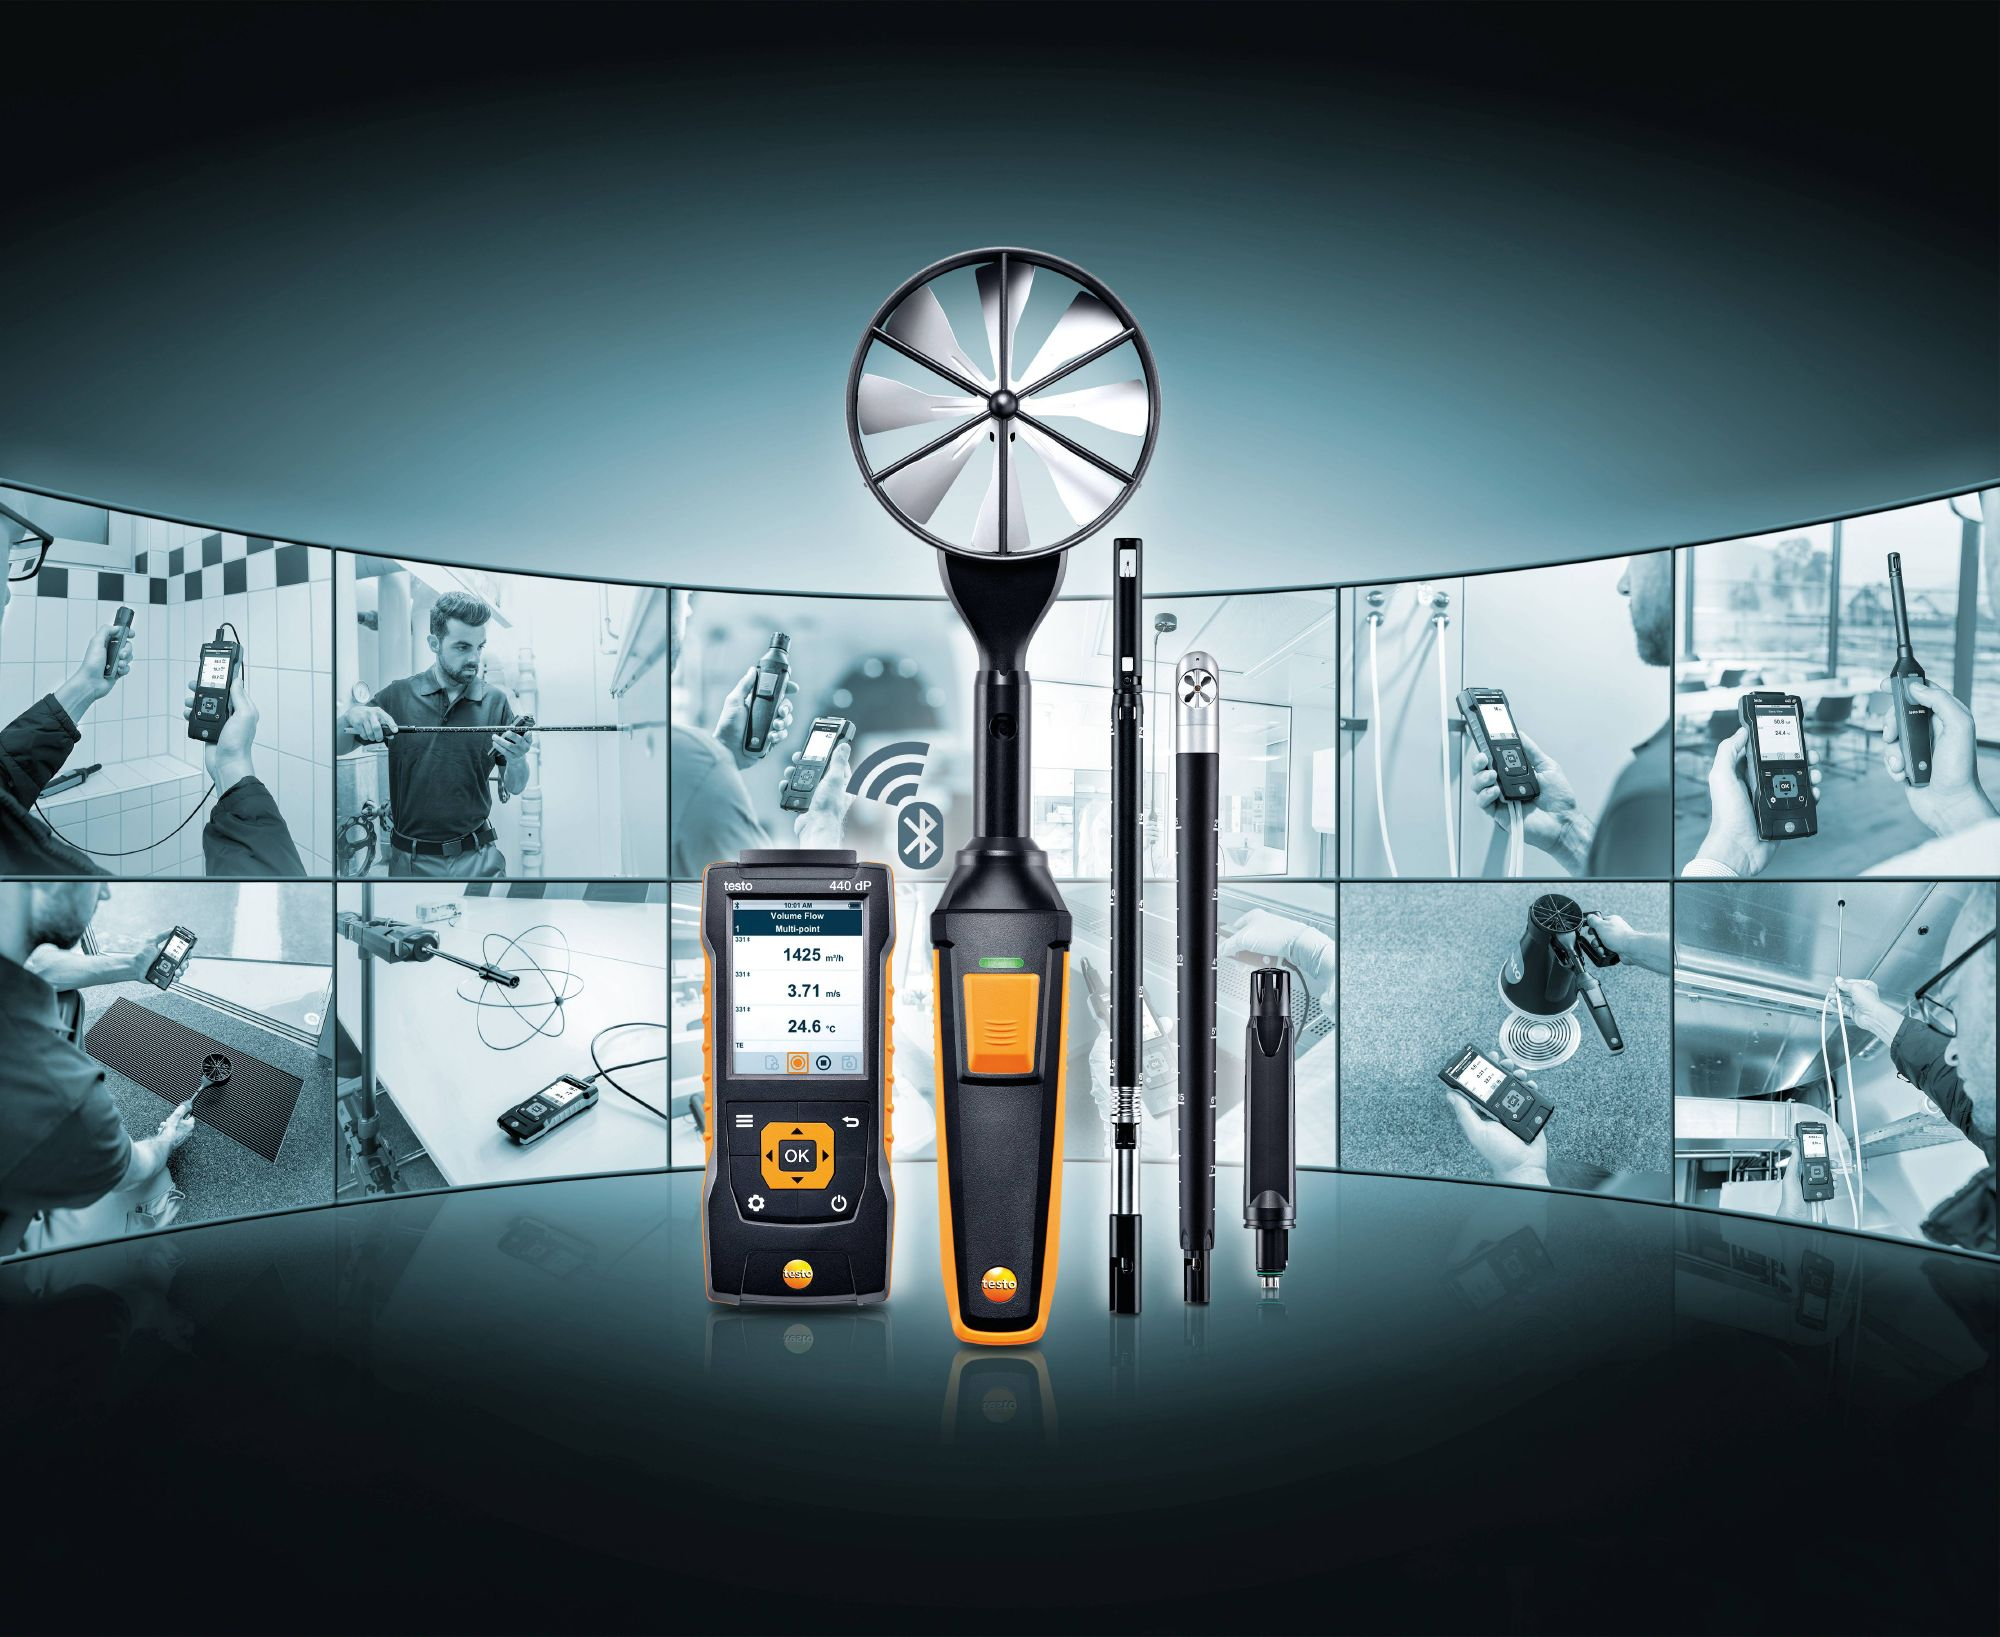 The new testo 440 air velocity & IAQ measuring instrument